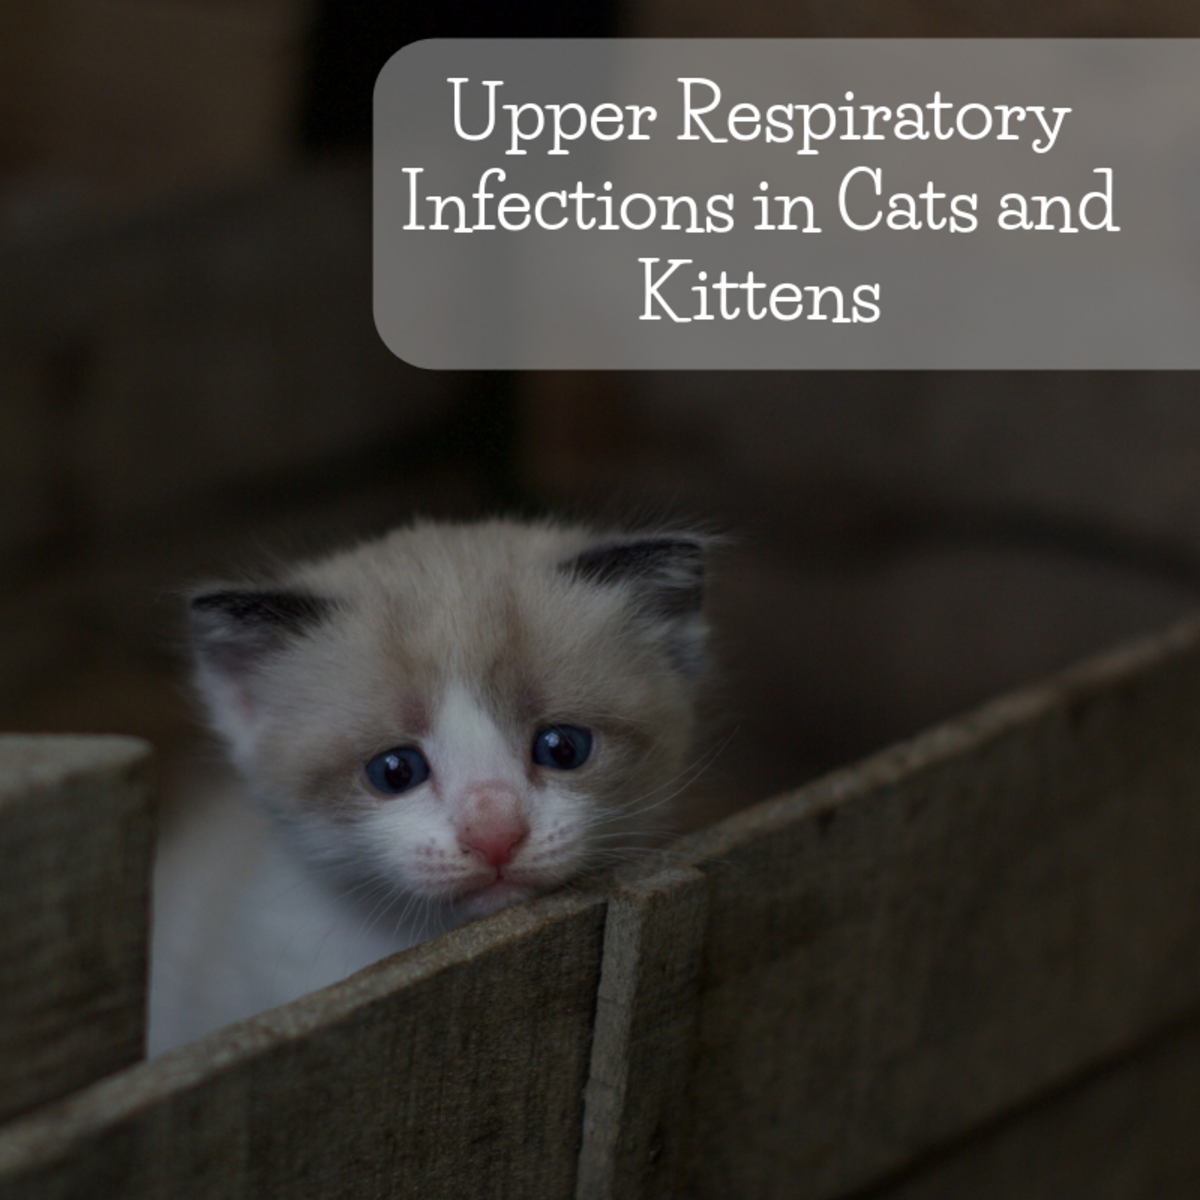 URIs are a common cause of runny and bubbly noses in cats.